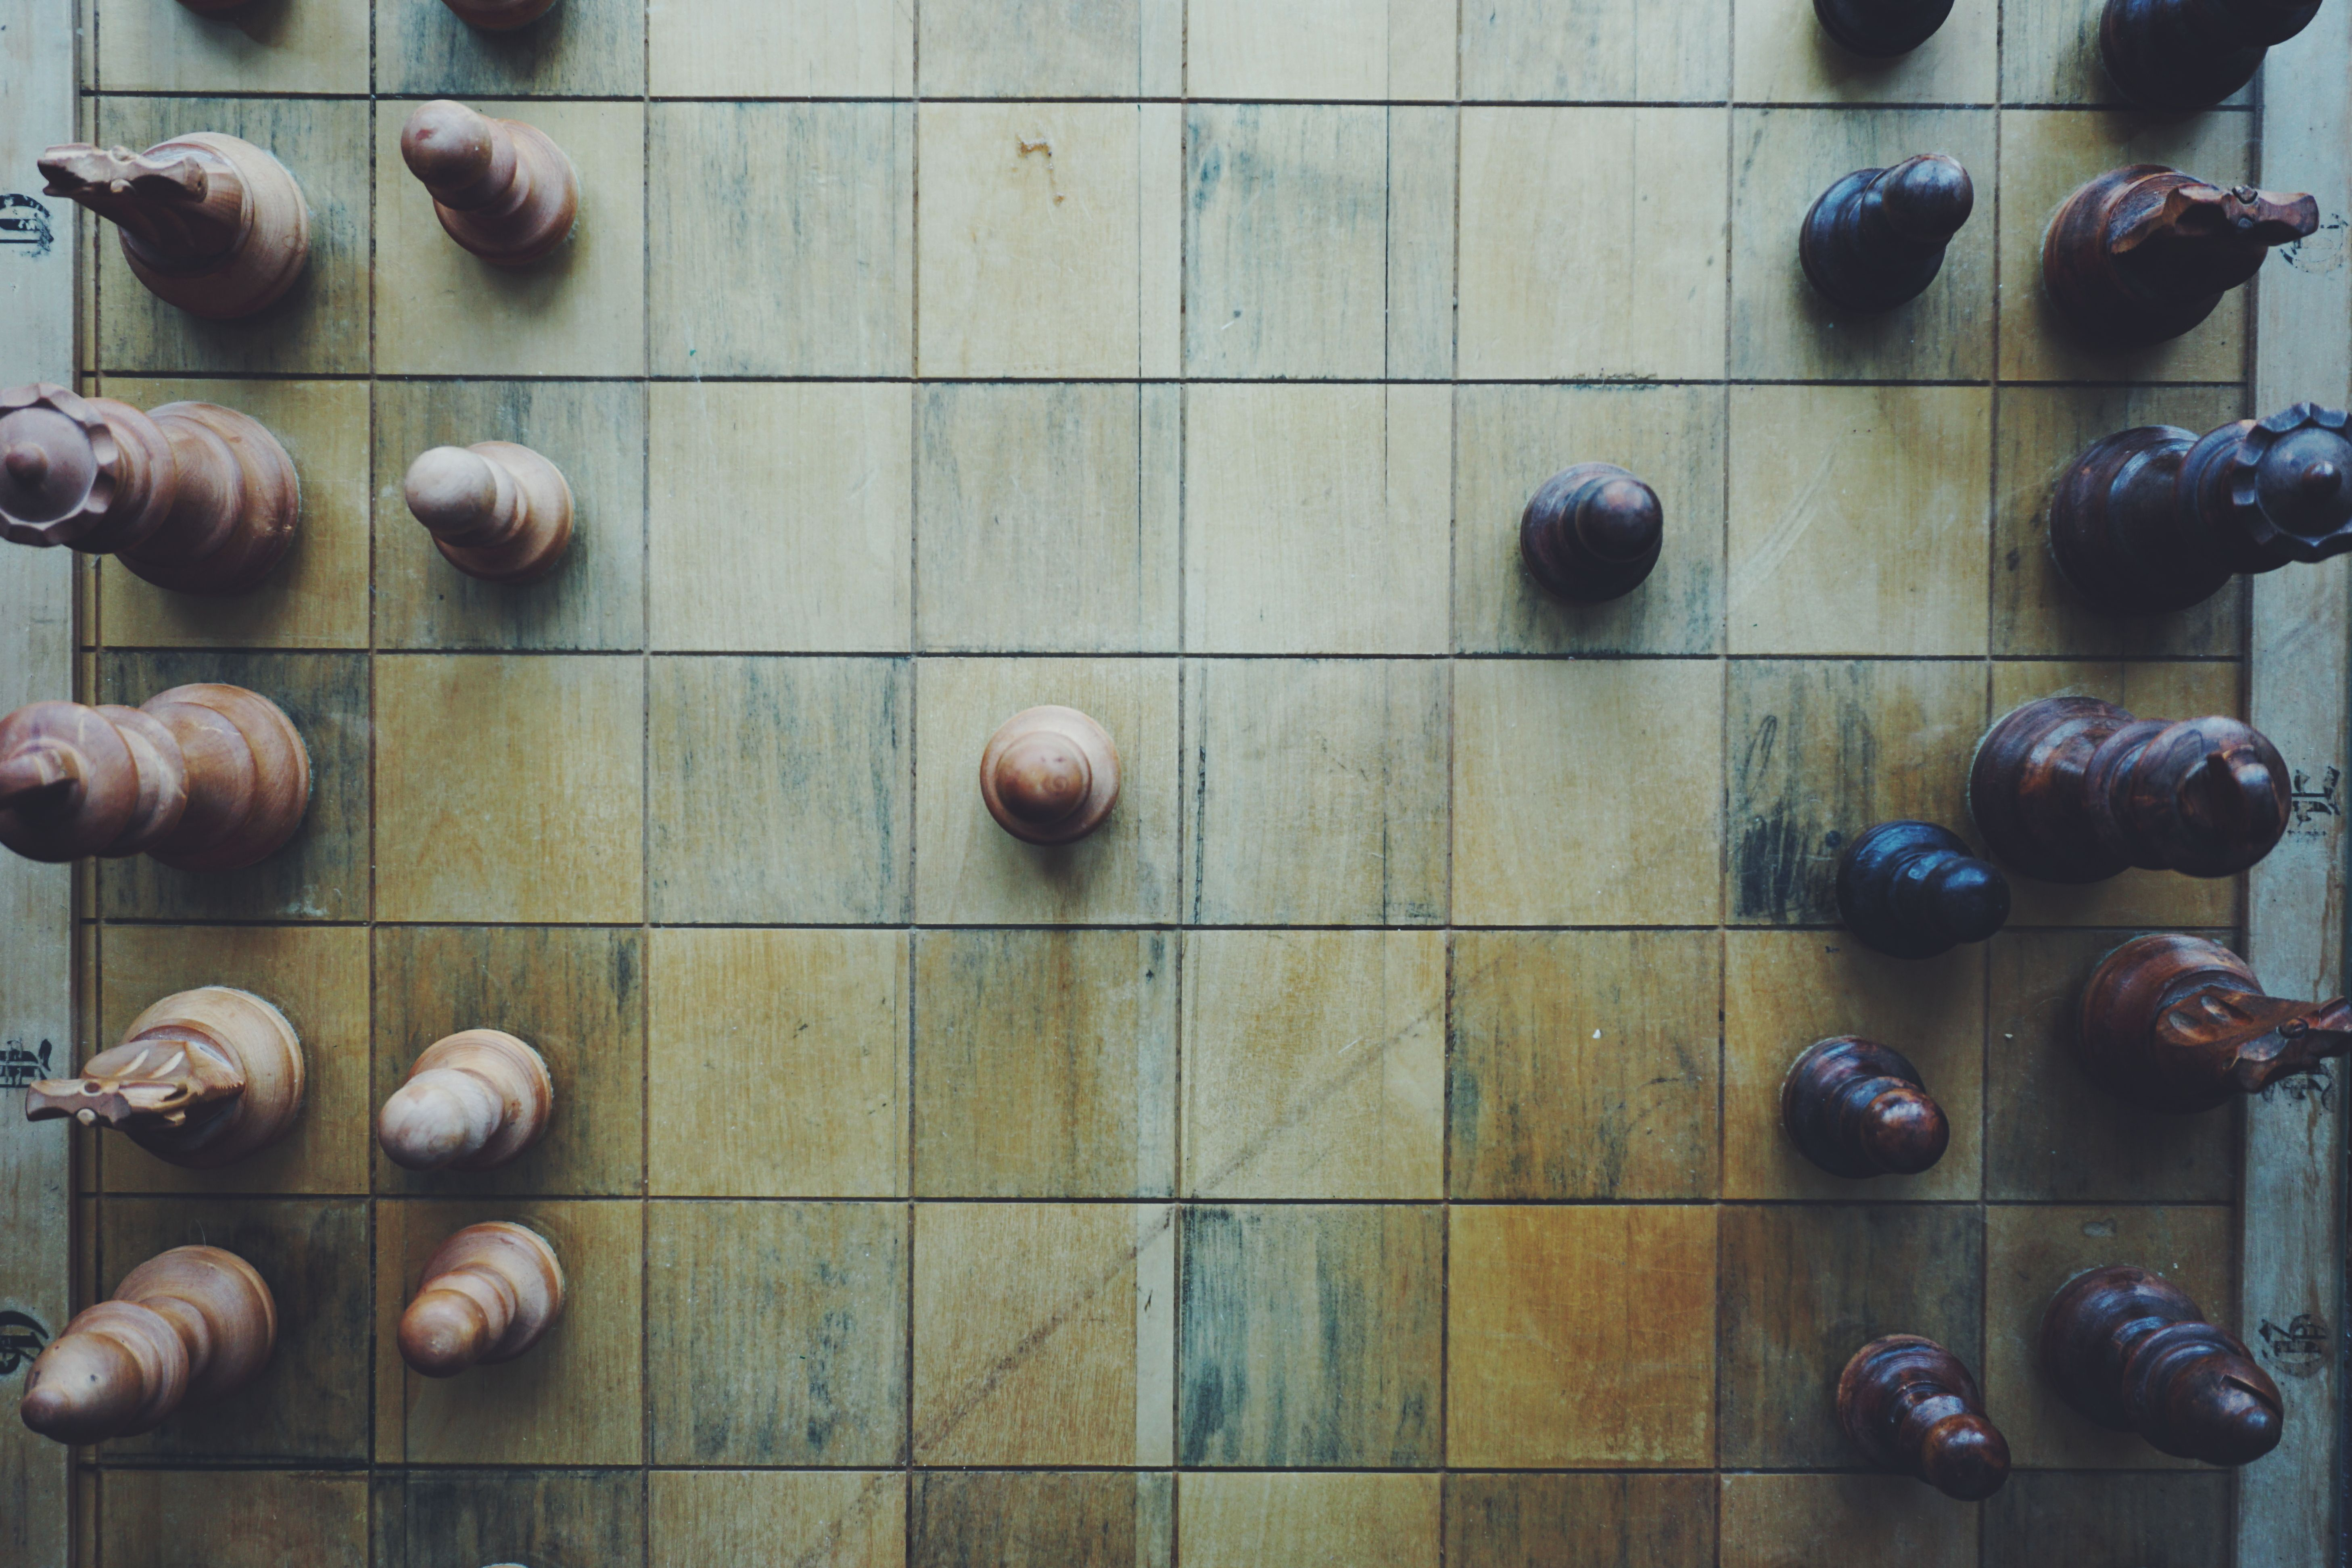 Sky-view of wooden chess board with pieces